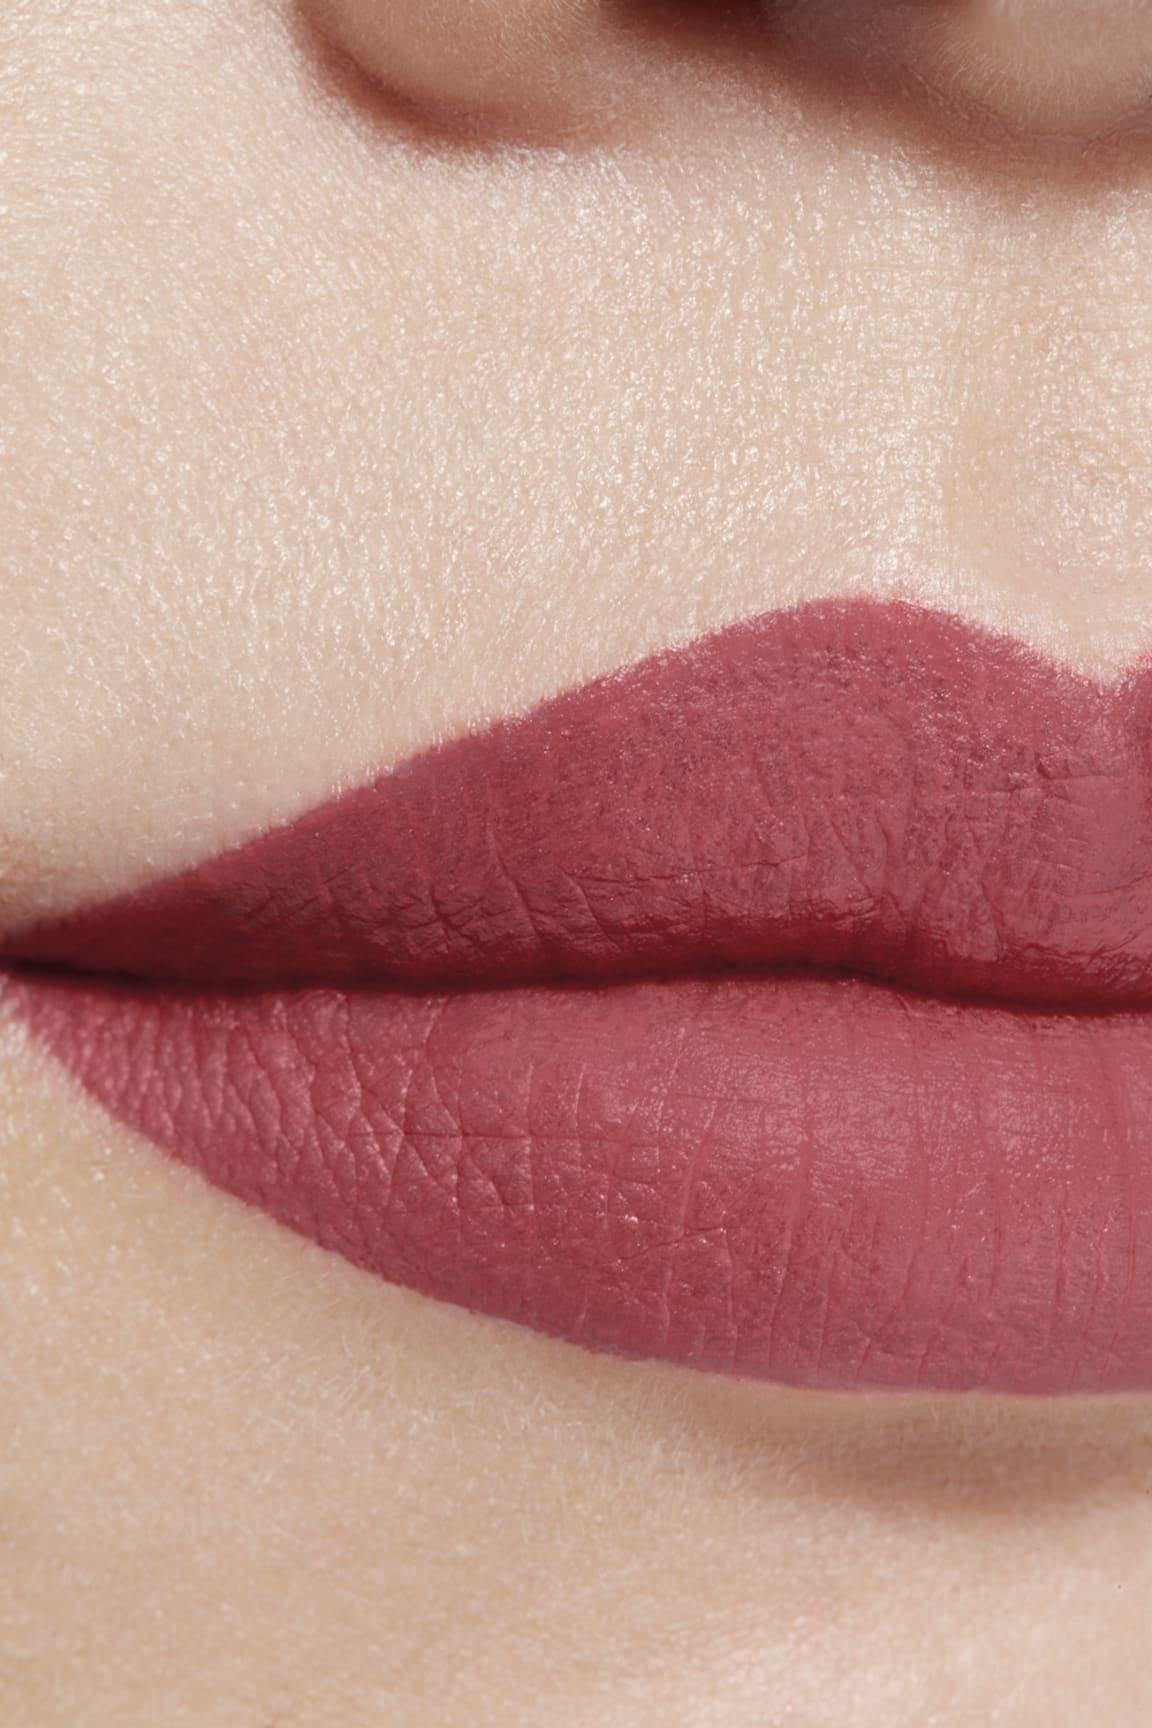 Visual applicazione make up 1 - ROUGE ALLURE INK FUSION 806 - PINK BROWN